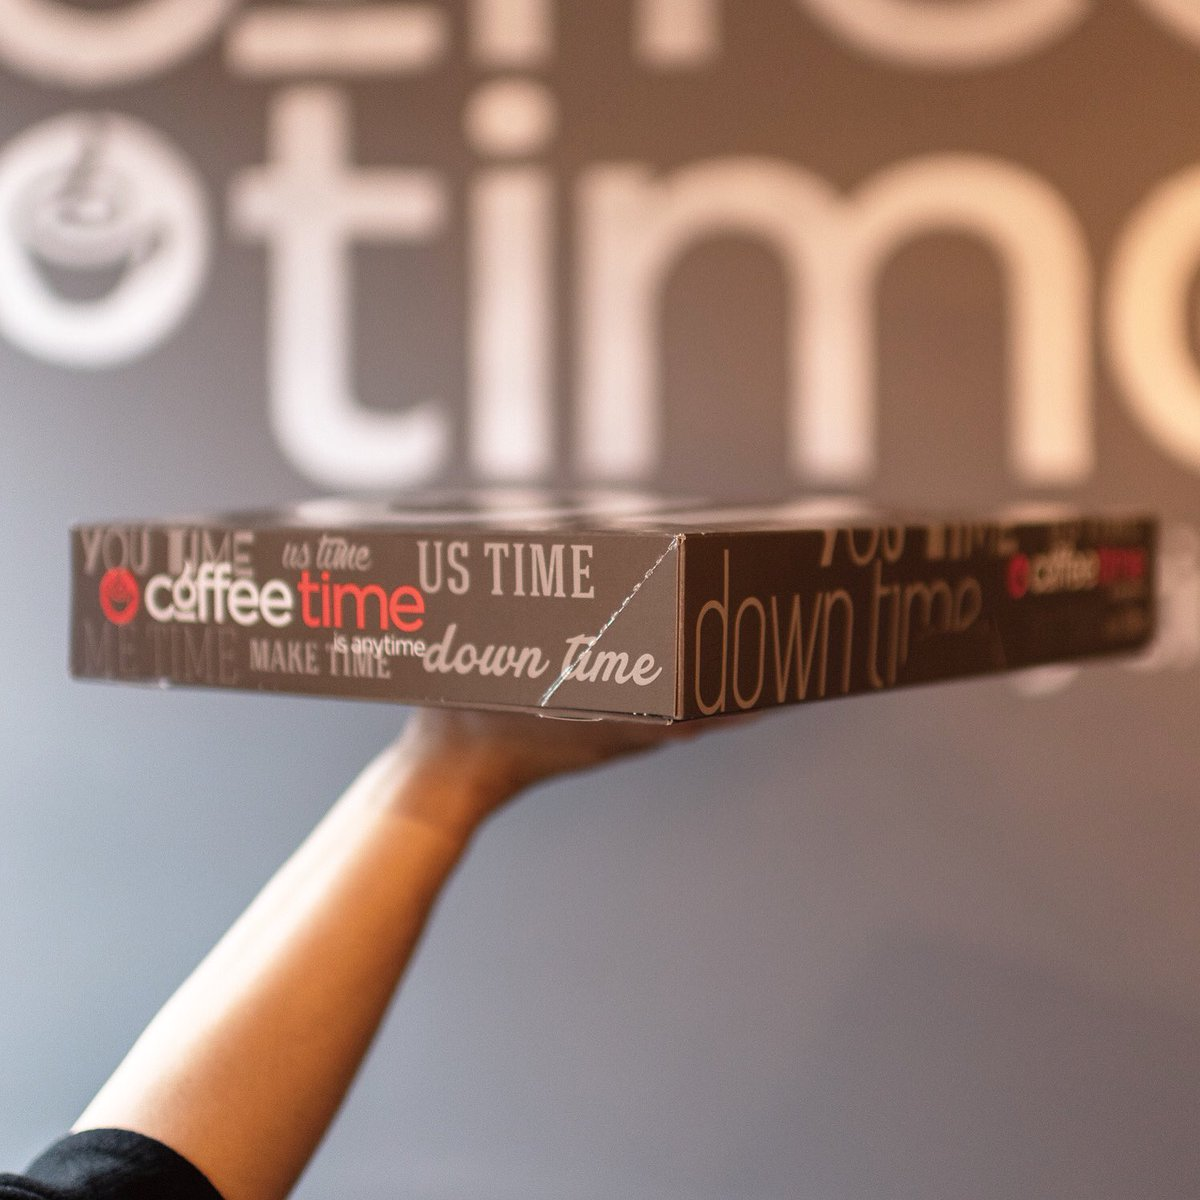 Why raise a glass to #humpday when you can raise a box (of donuts)  #coffeetime #coffeetimeisanytime  #coffee #cappuccino #coffeeaddict #coffeelover #coffeebar #coffeeshop #coffeehouse<br>http://pic.twitter.com/y7bUctsoxq